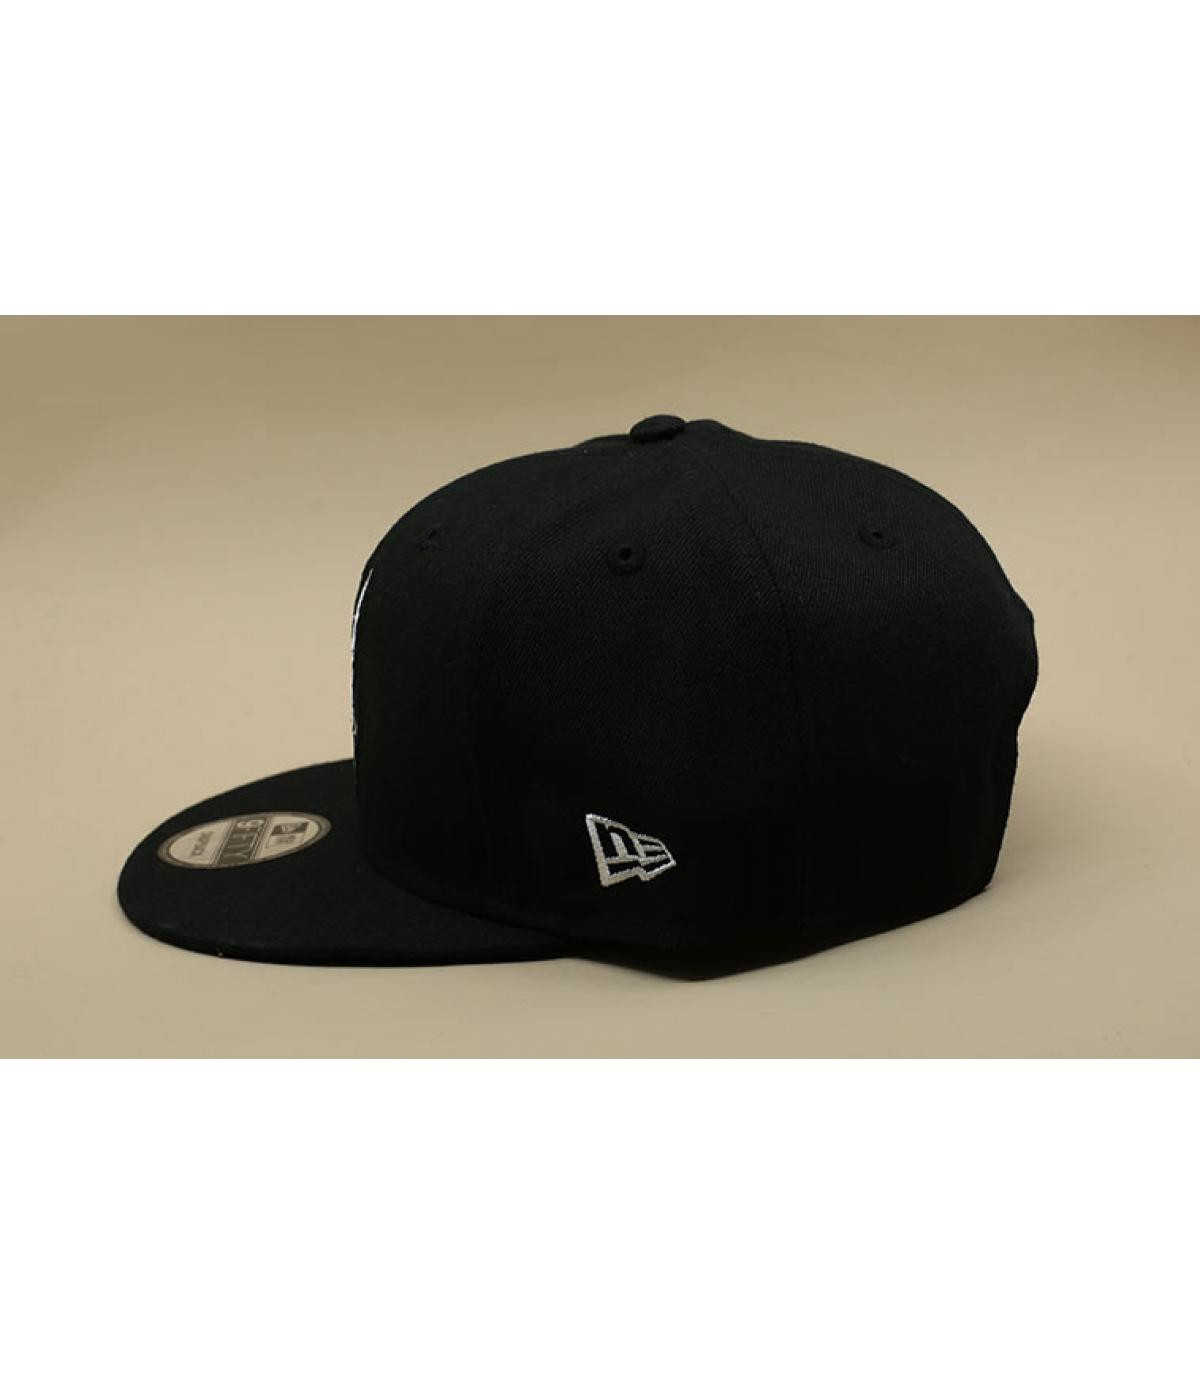 Details Snapback Call of Duty MW - afbeeling 5